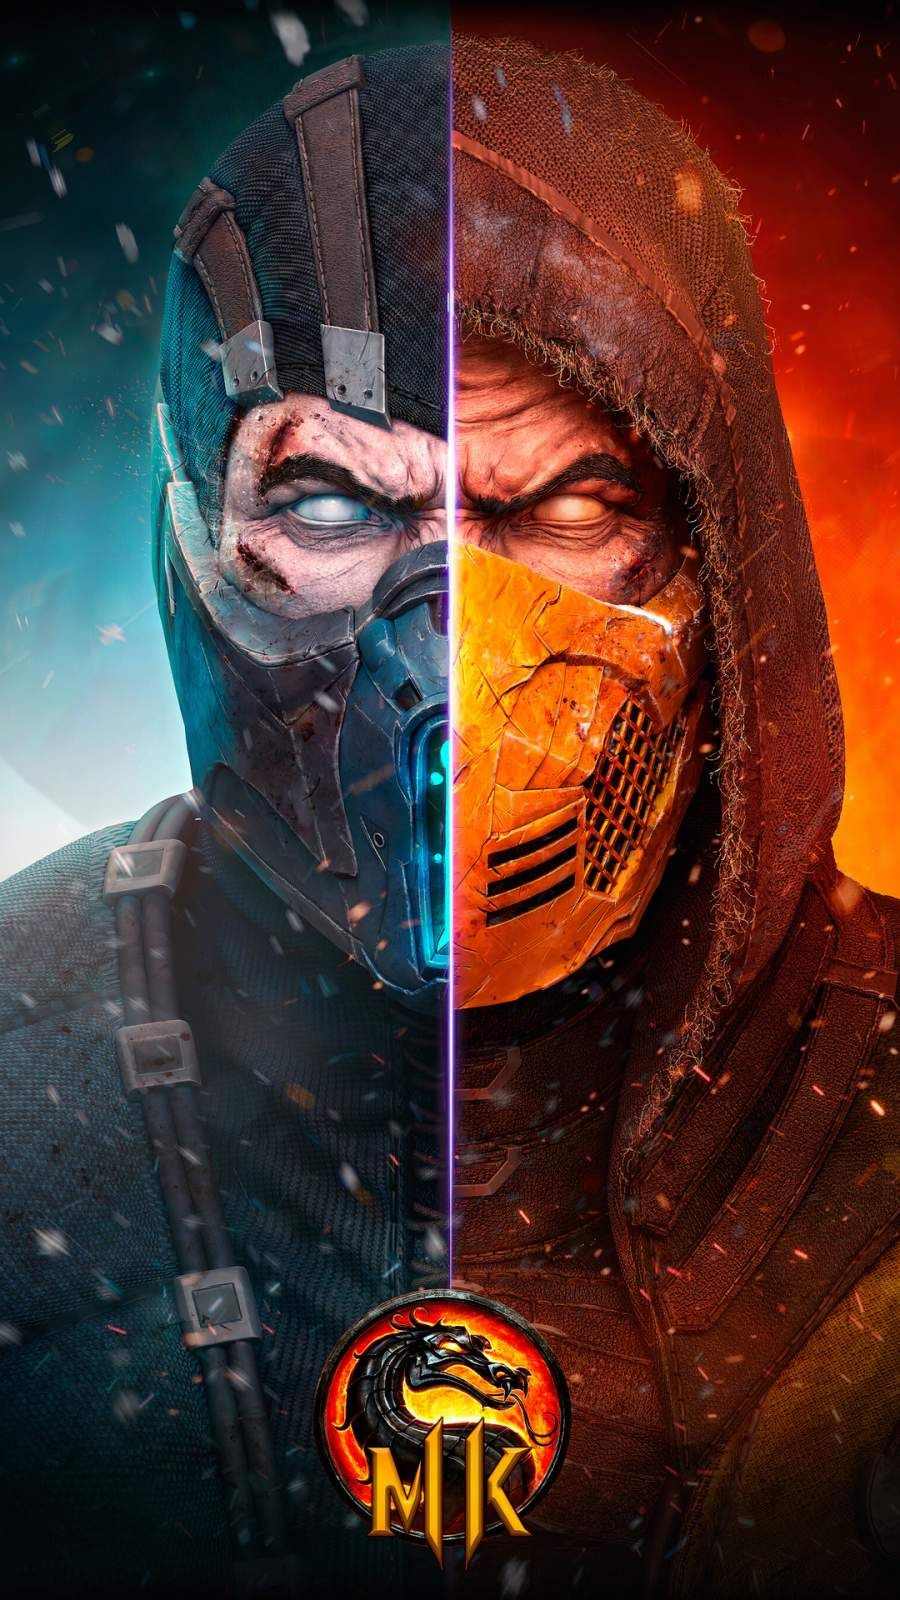 Iphone Wallpapers For Iphone 12 Iphone 11 Iphone X Iphone Xr Iphone 8 Plus High In 2020 Scorpion Mortal Kombat Mortal Kombat X Wallpapers Mortal Kombat X Scorpion